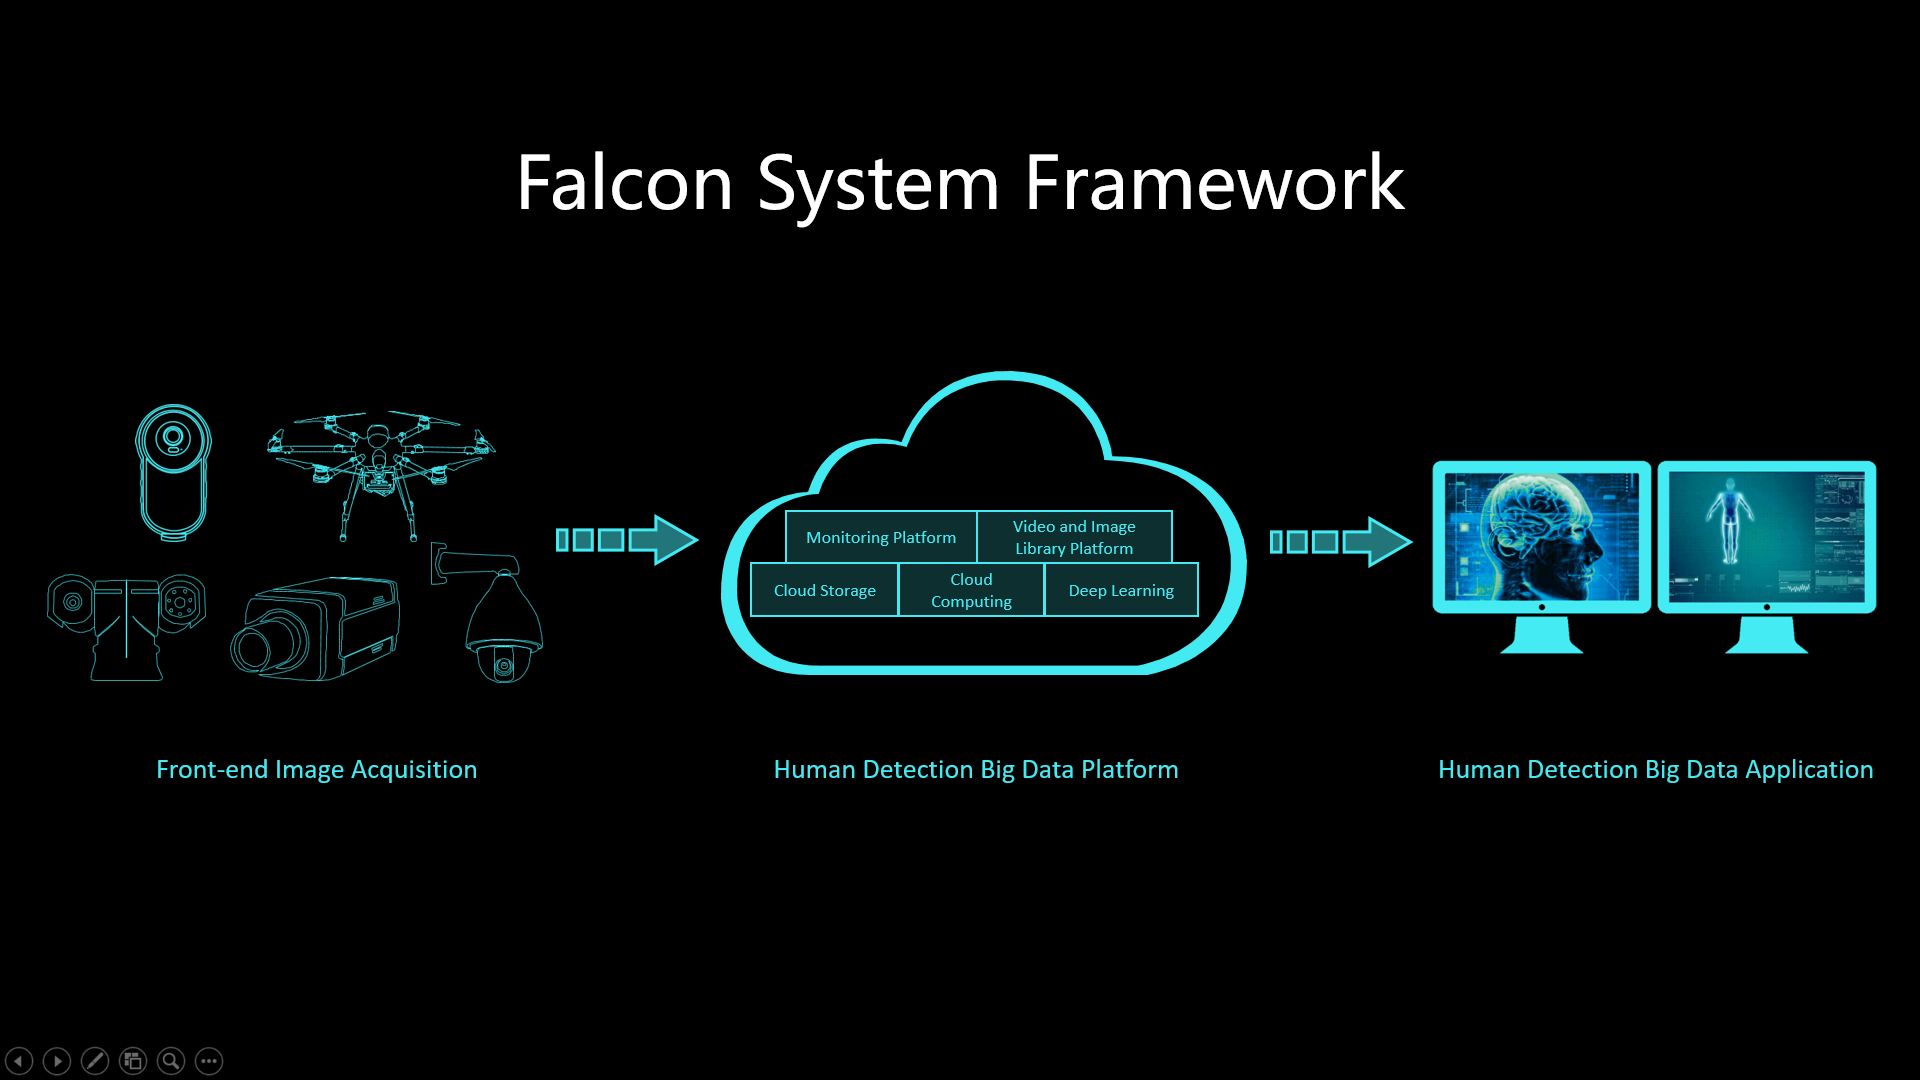 Falcon Big Data Platform: Nominated and Awarded Best in All